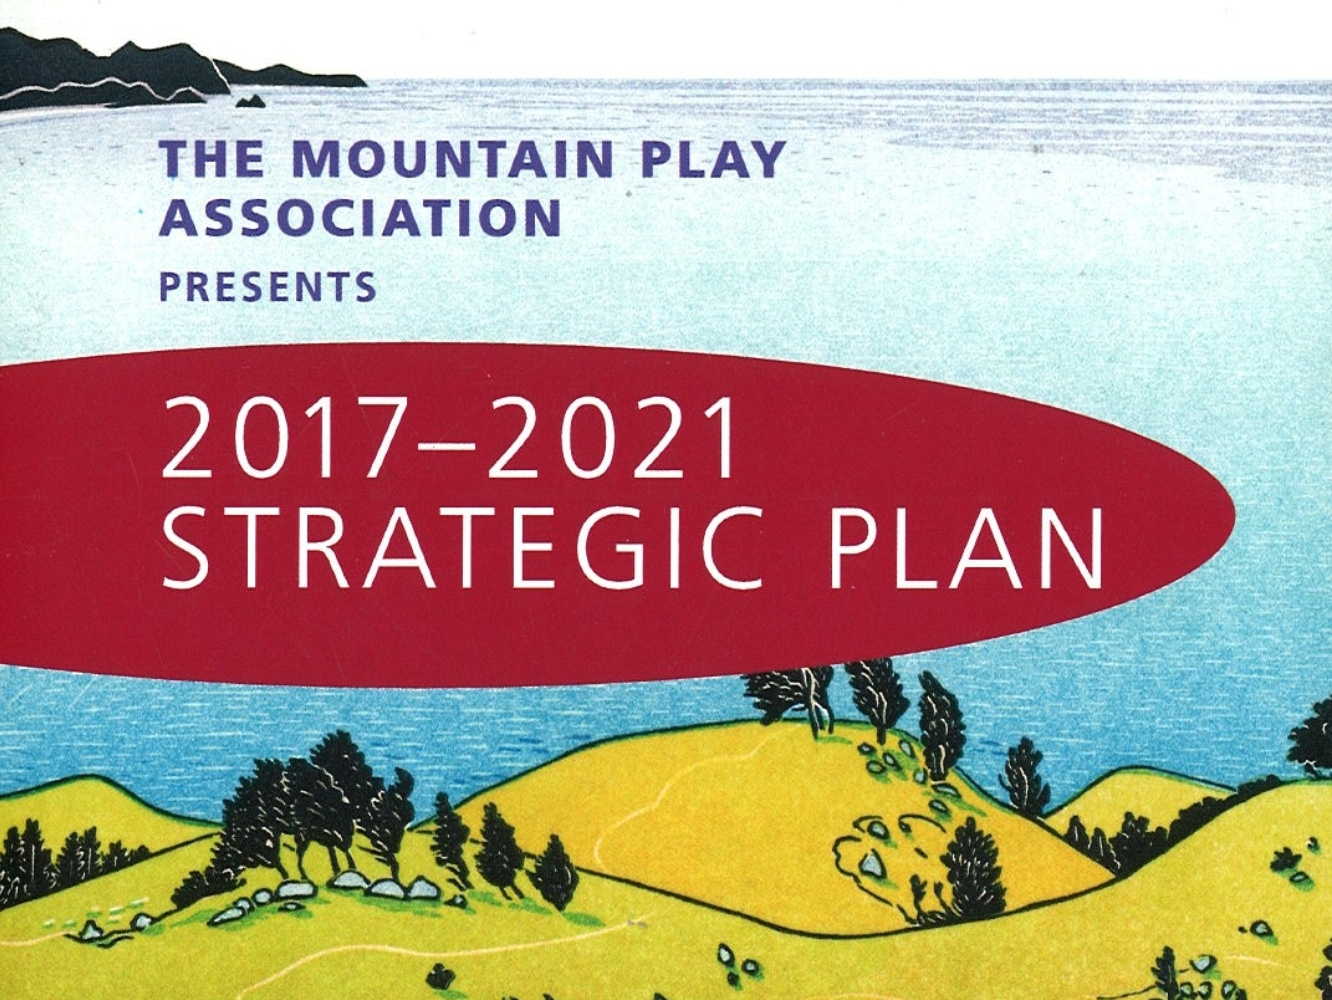 Link to Strategic Plan 2017-2021